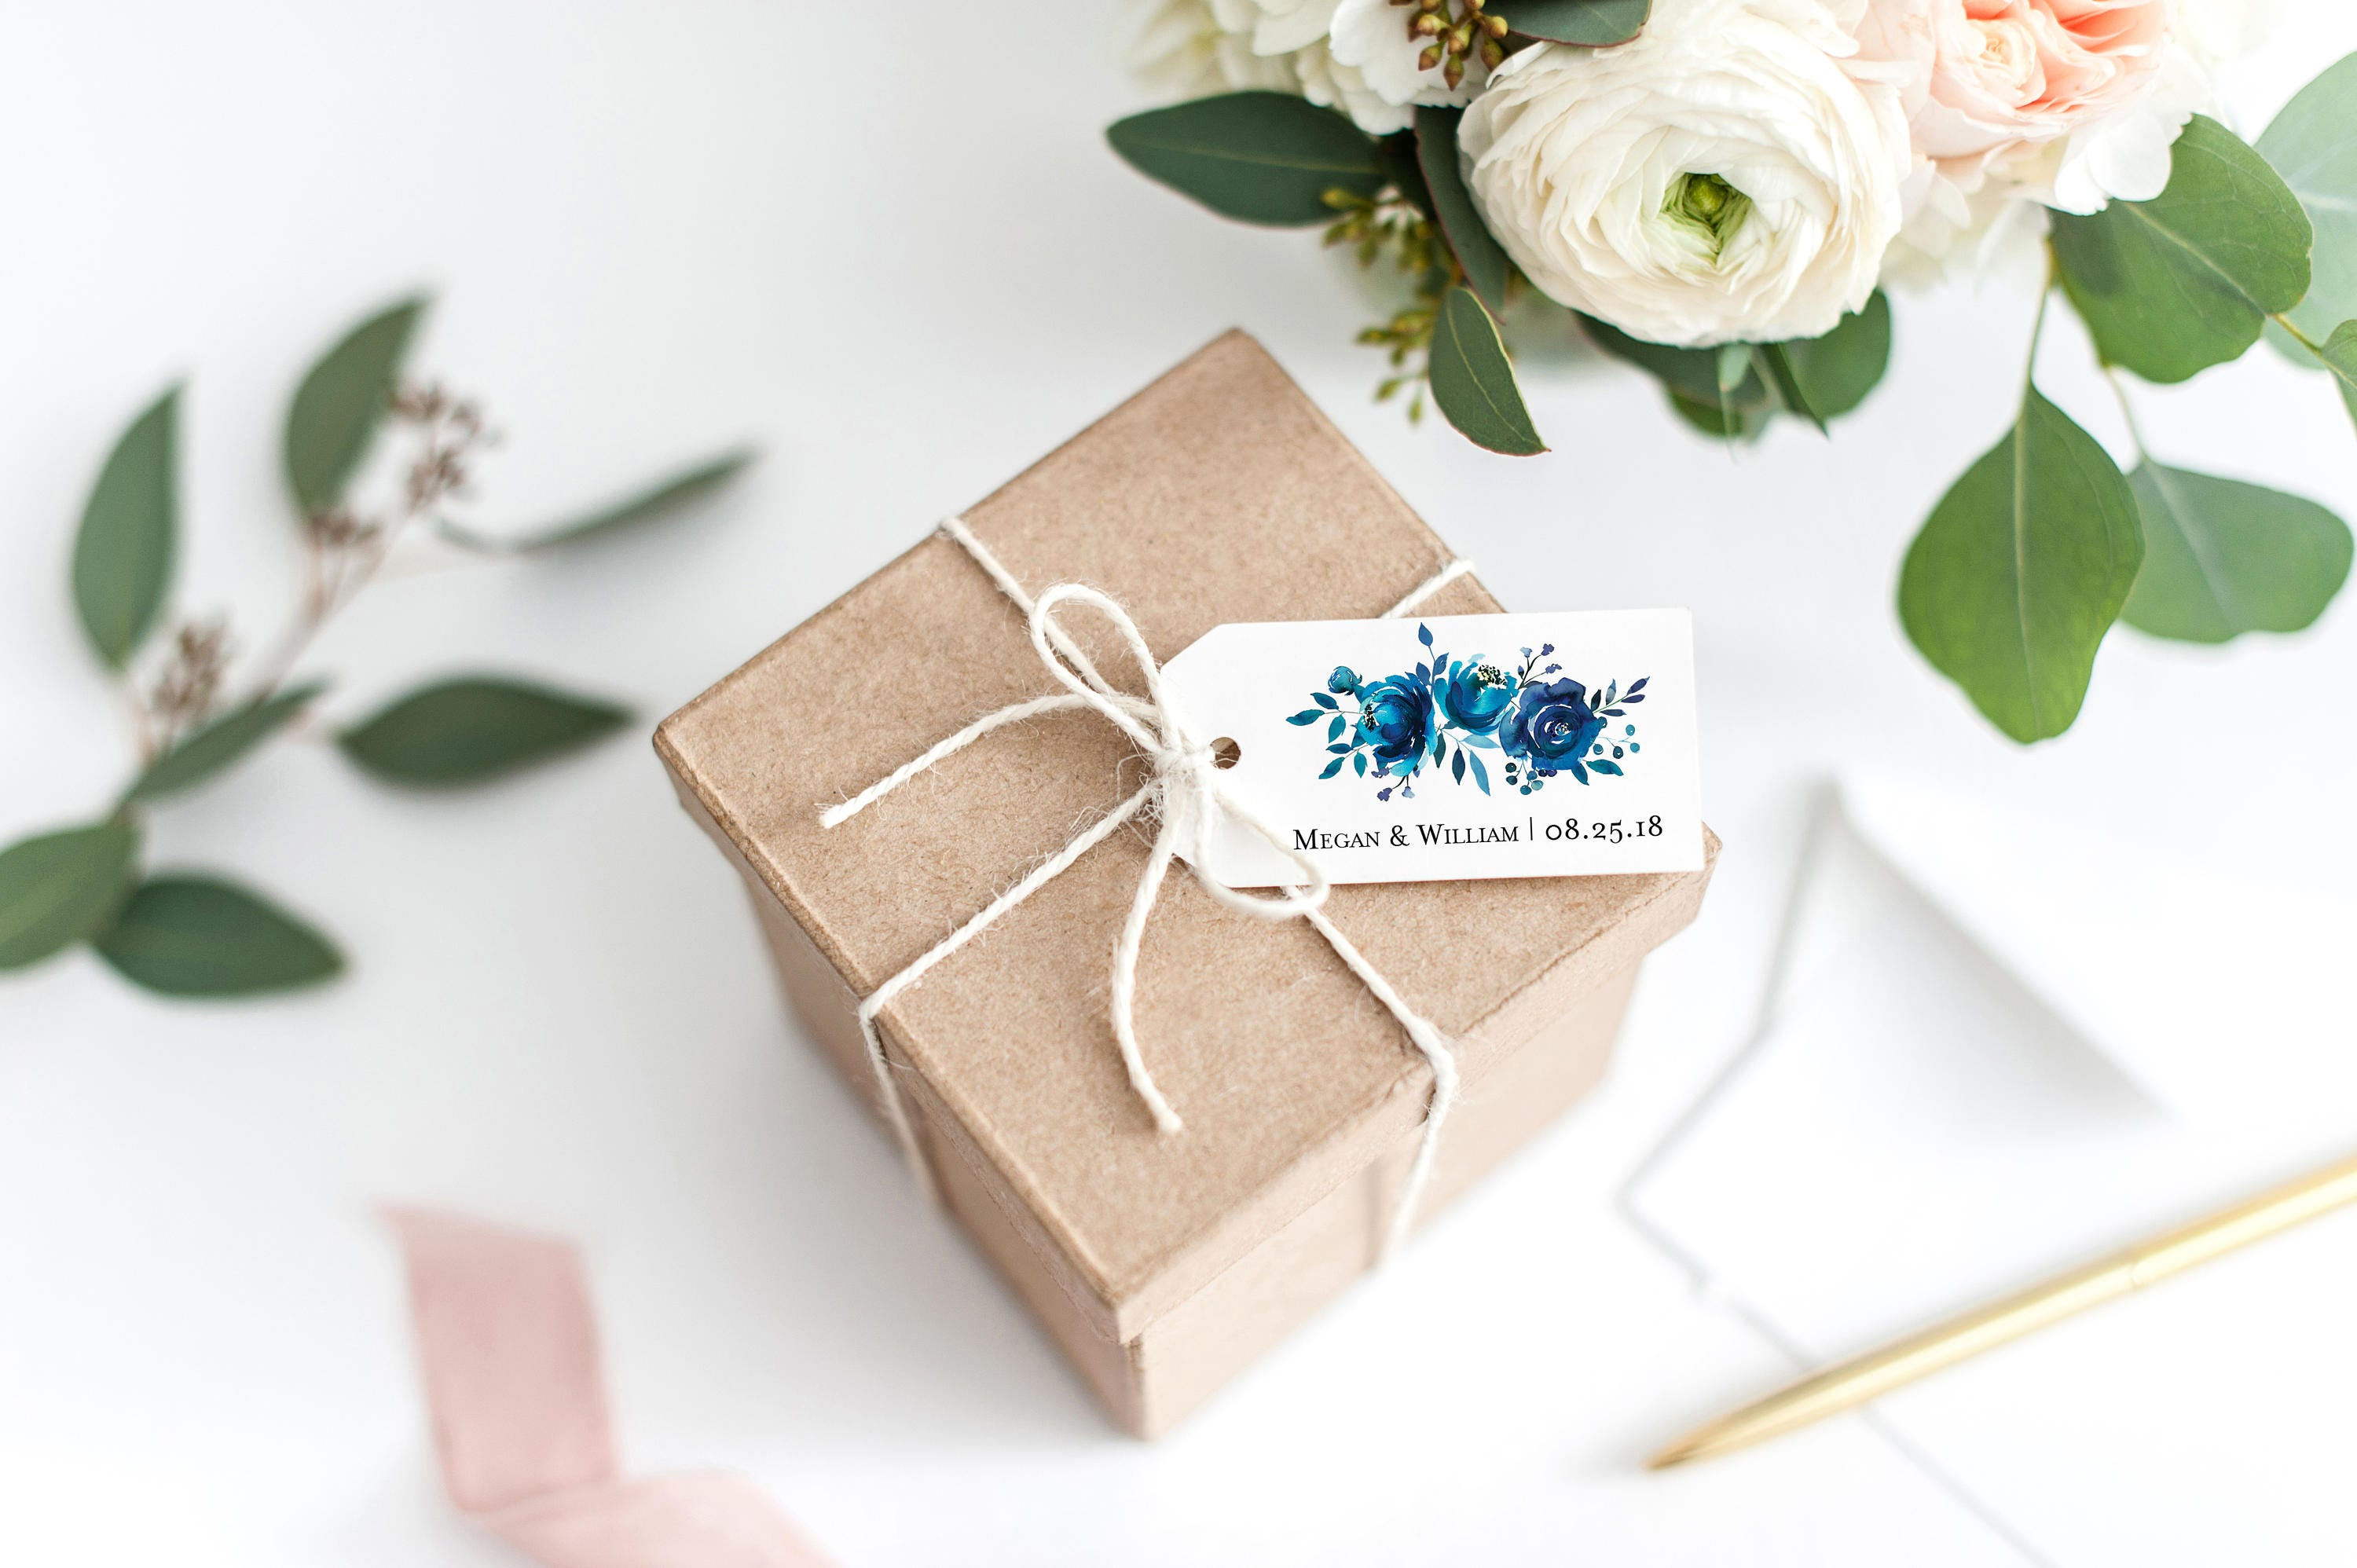 Bridal Shower Tags Wedding Favor Tags Gift Bag Tags for